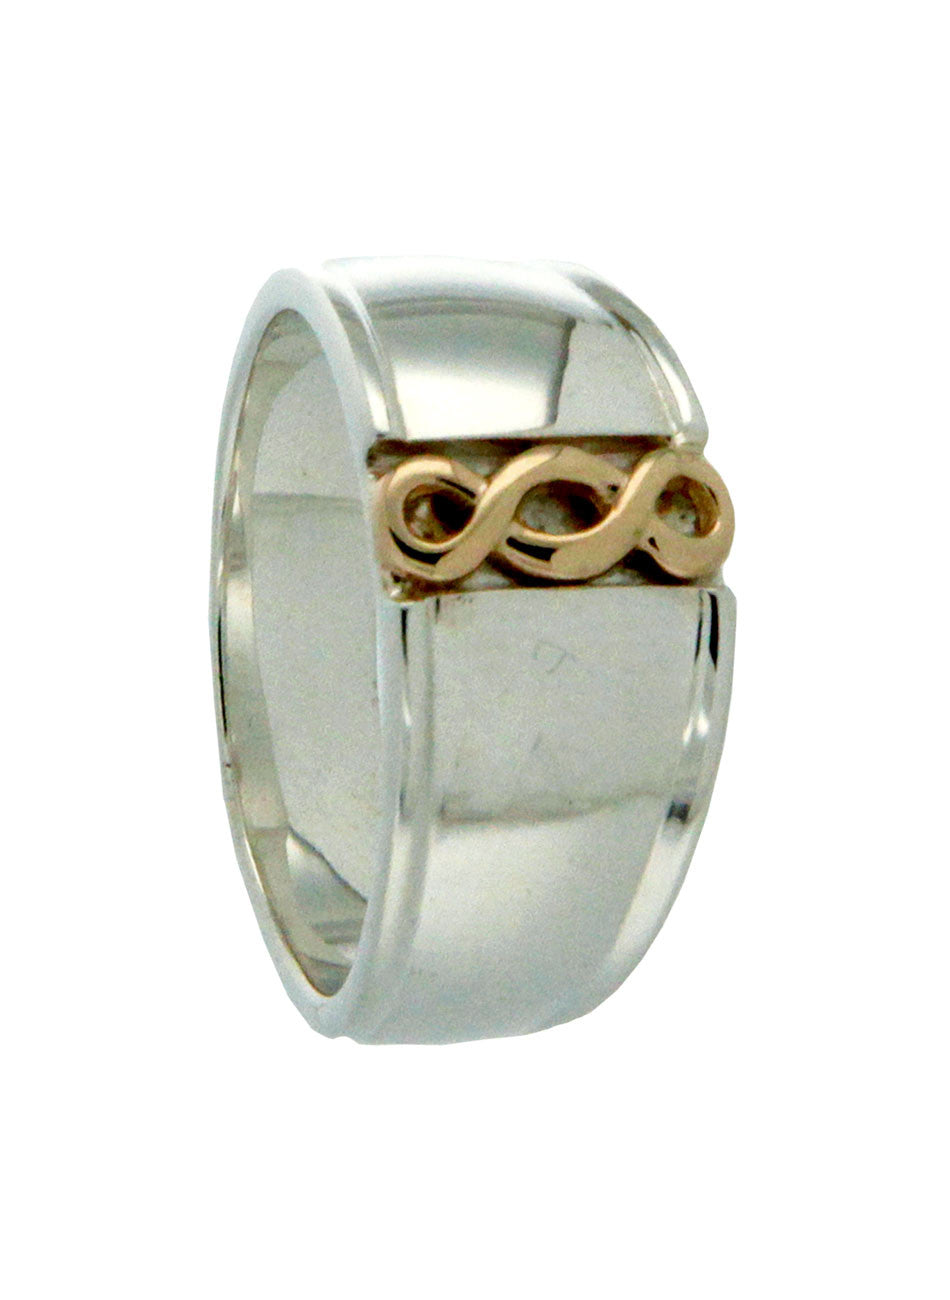 Infinity knot Ring - Sterling Silver and 10k Yellow Gold